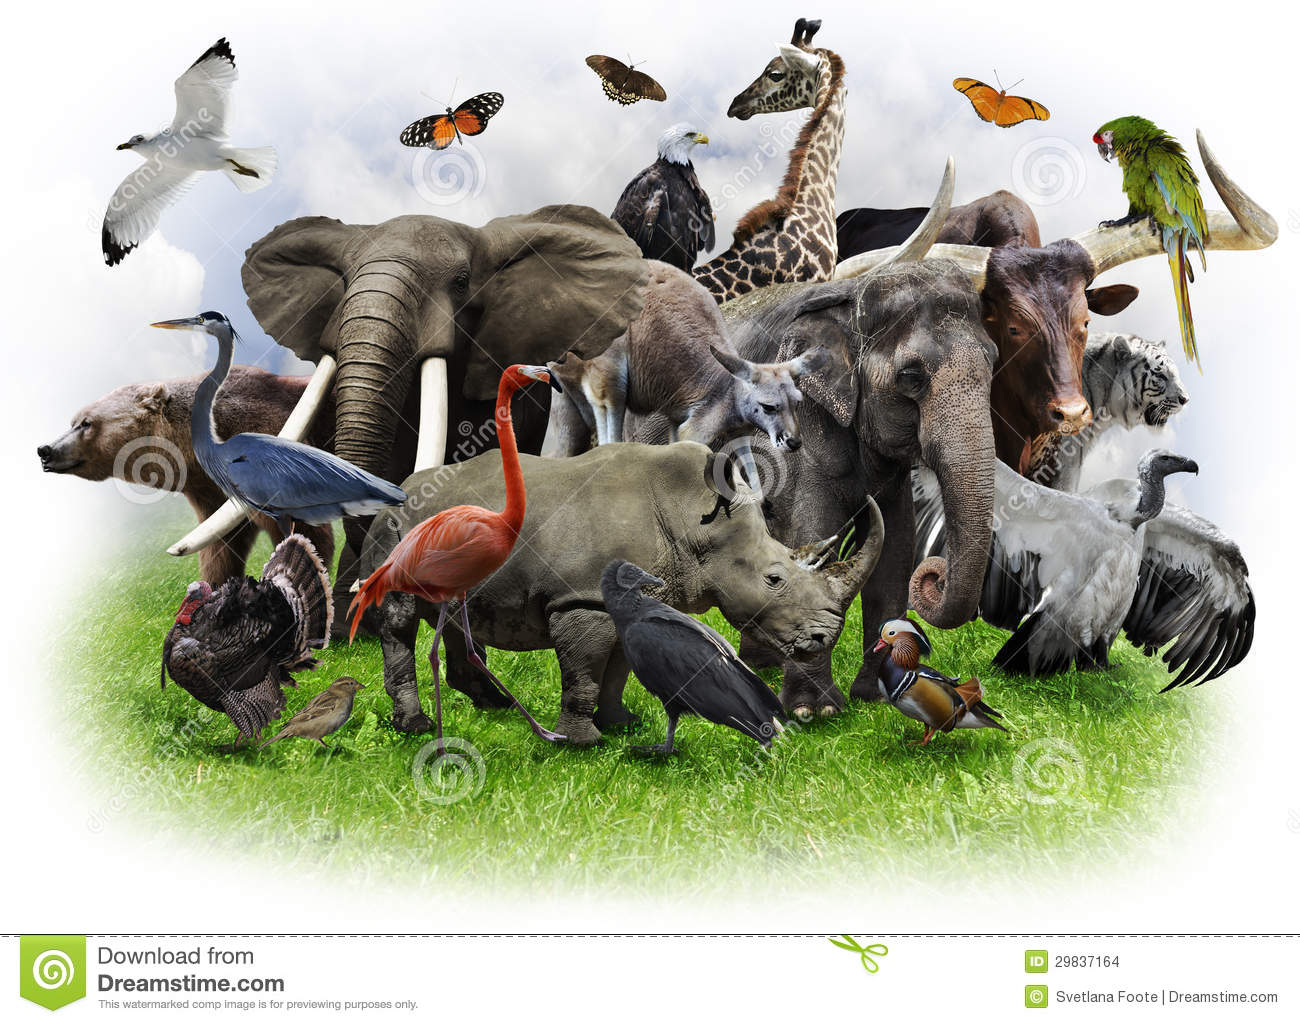 Group of wild animals together - photo#16